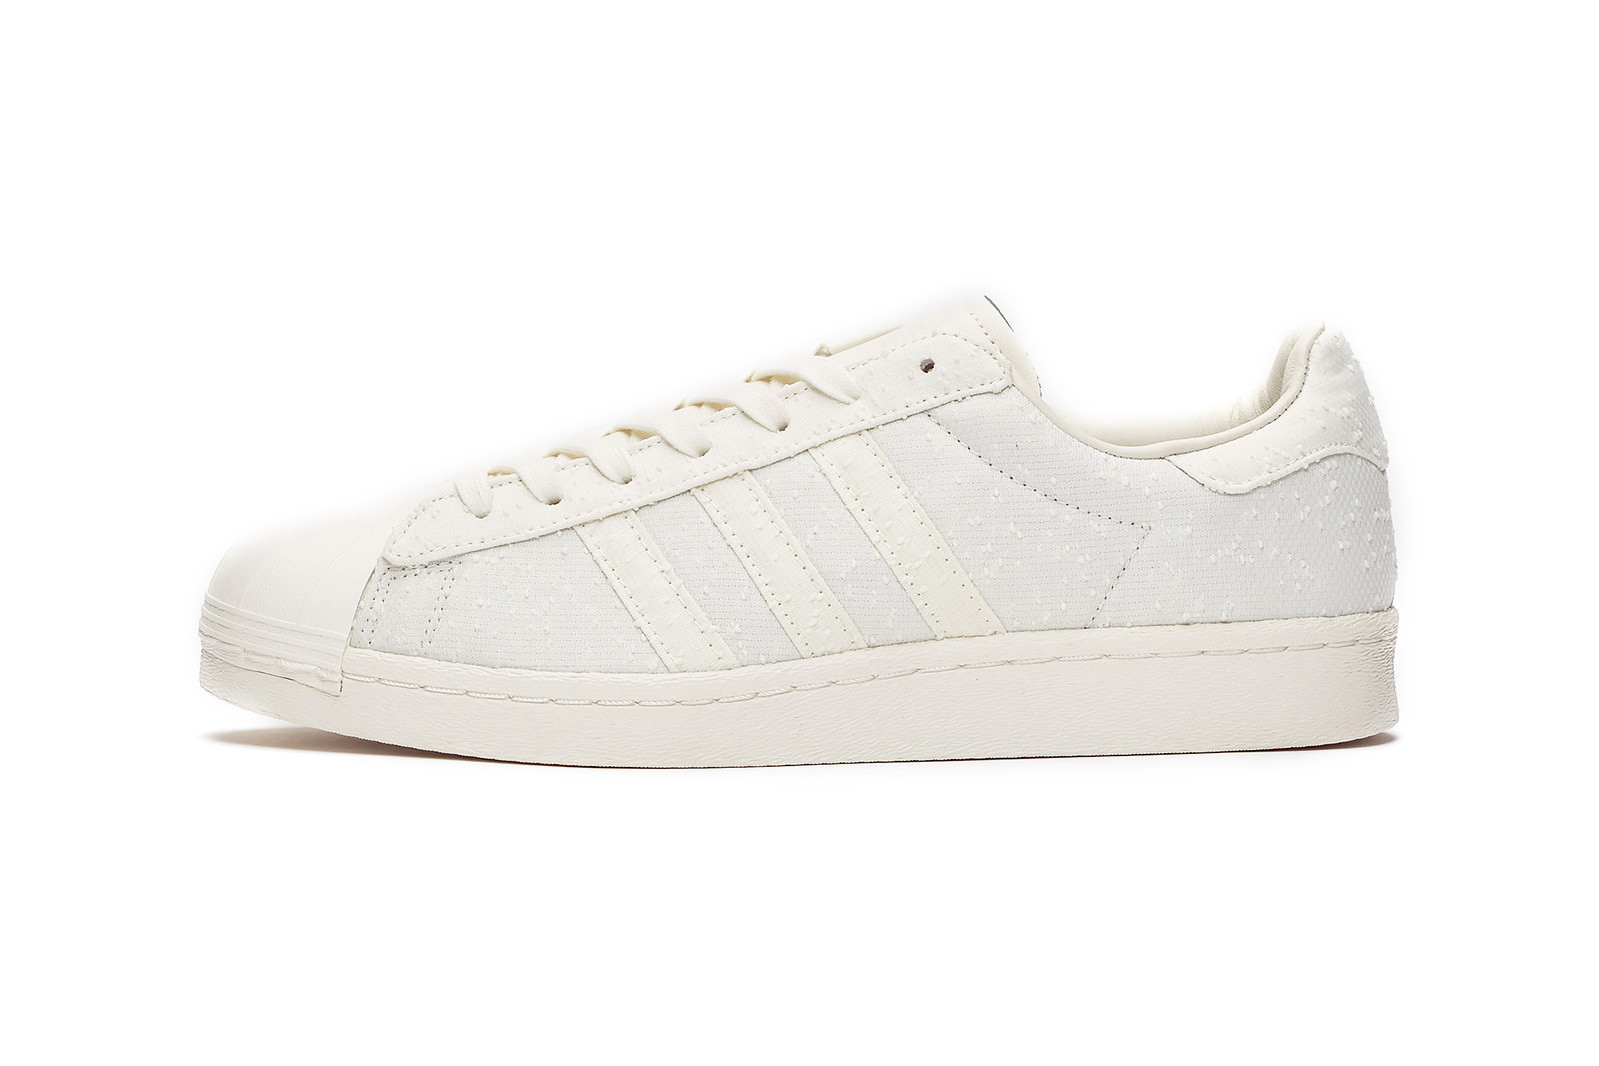 'Shades of White' v2 Sneakersnstuff x adidas Originals Pack